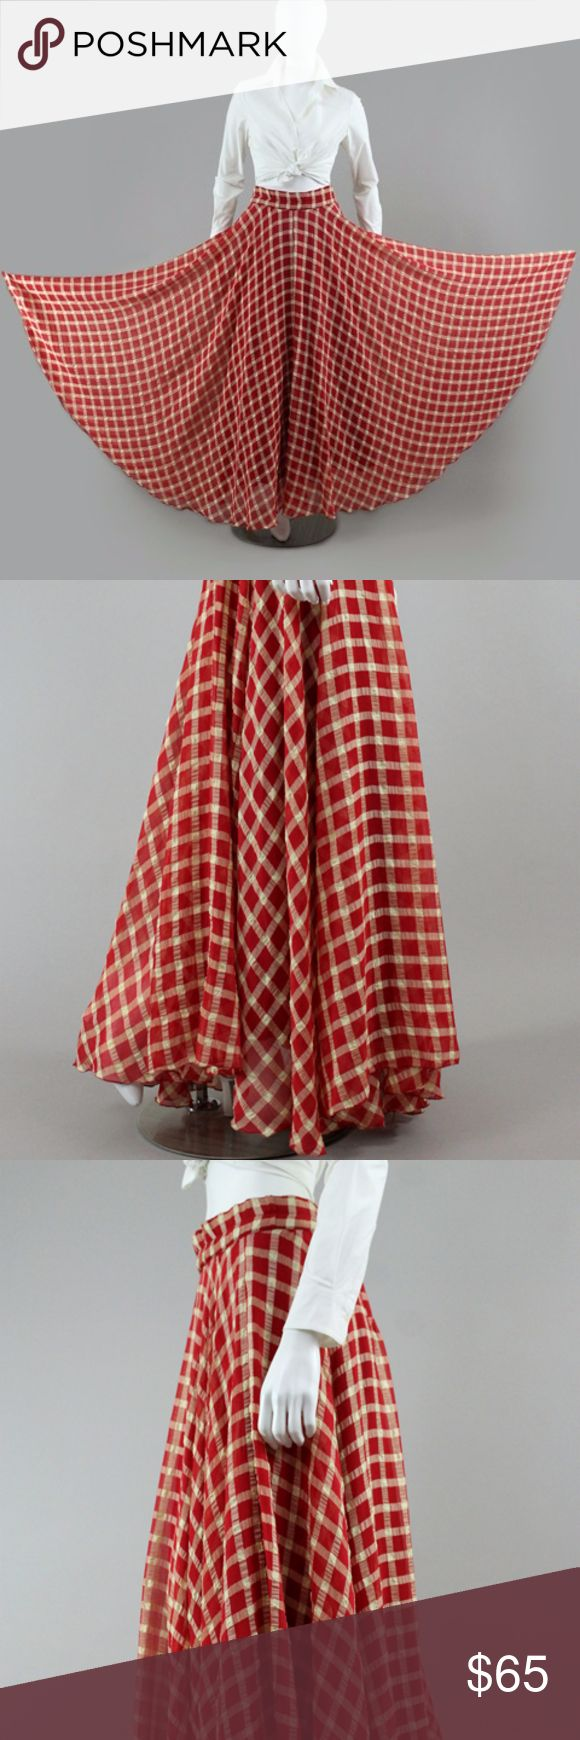 "SWEEPING PLAID FLOWING MAXI DRAPING SKIRT KILLER skirt made of a puckered cotton crepe, featuring a banded waist and fluted hemline.   Cotton gauze insert which can be very easily snipped off.  Massive sweep of 305""!  Side clasps and zip closure.  Amazing skirt in very good pre-worn condition.  Waist: 27-29"" 